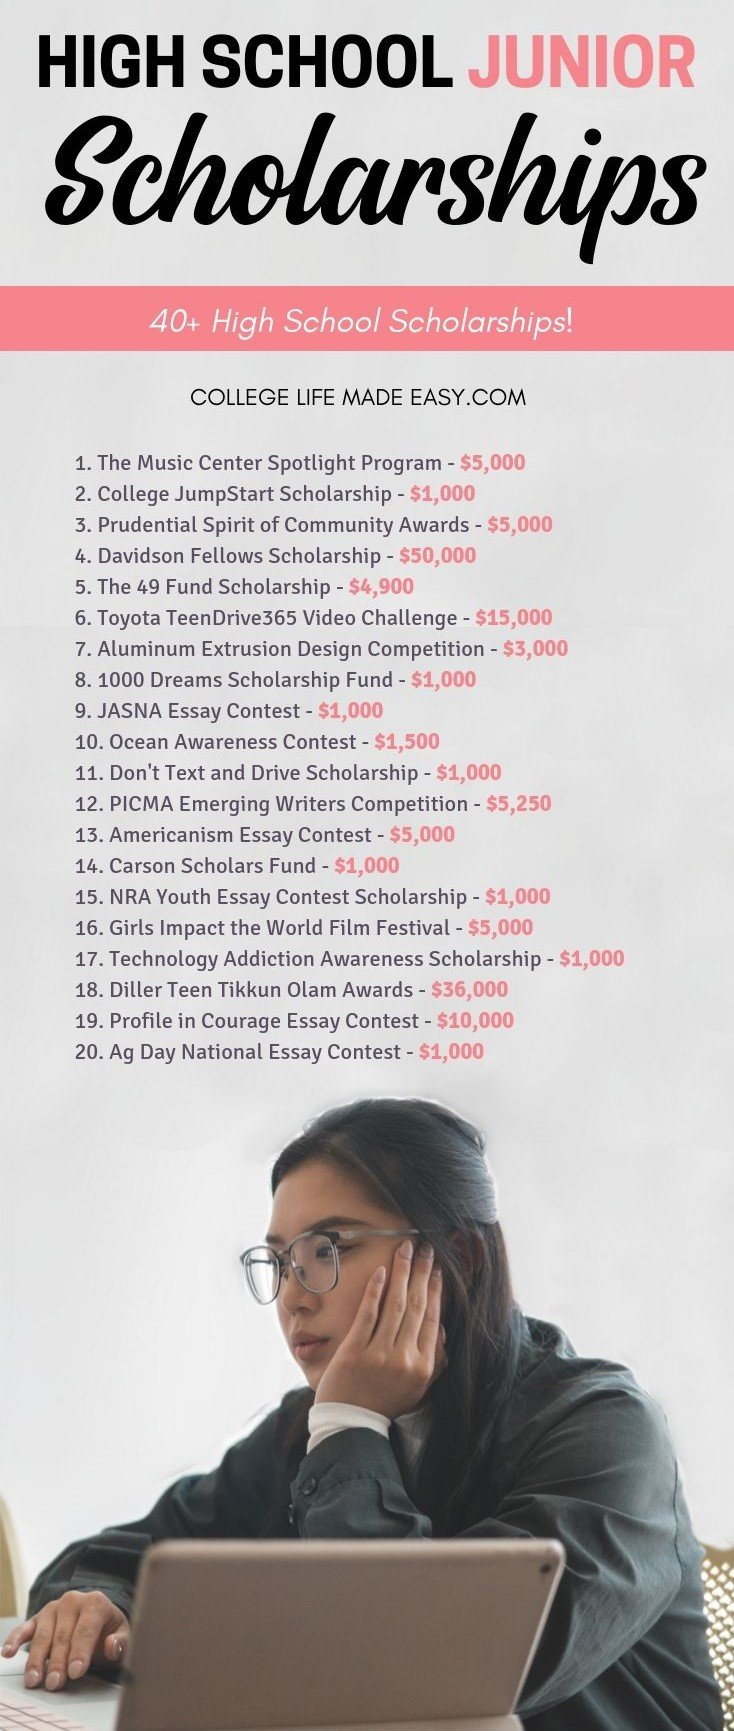 infographic with a list of scholarships for juniors in high school